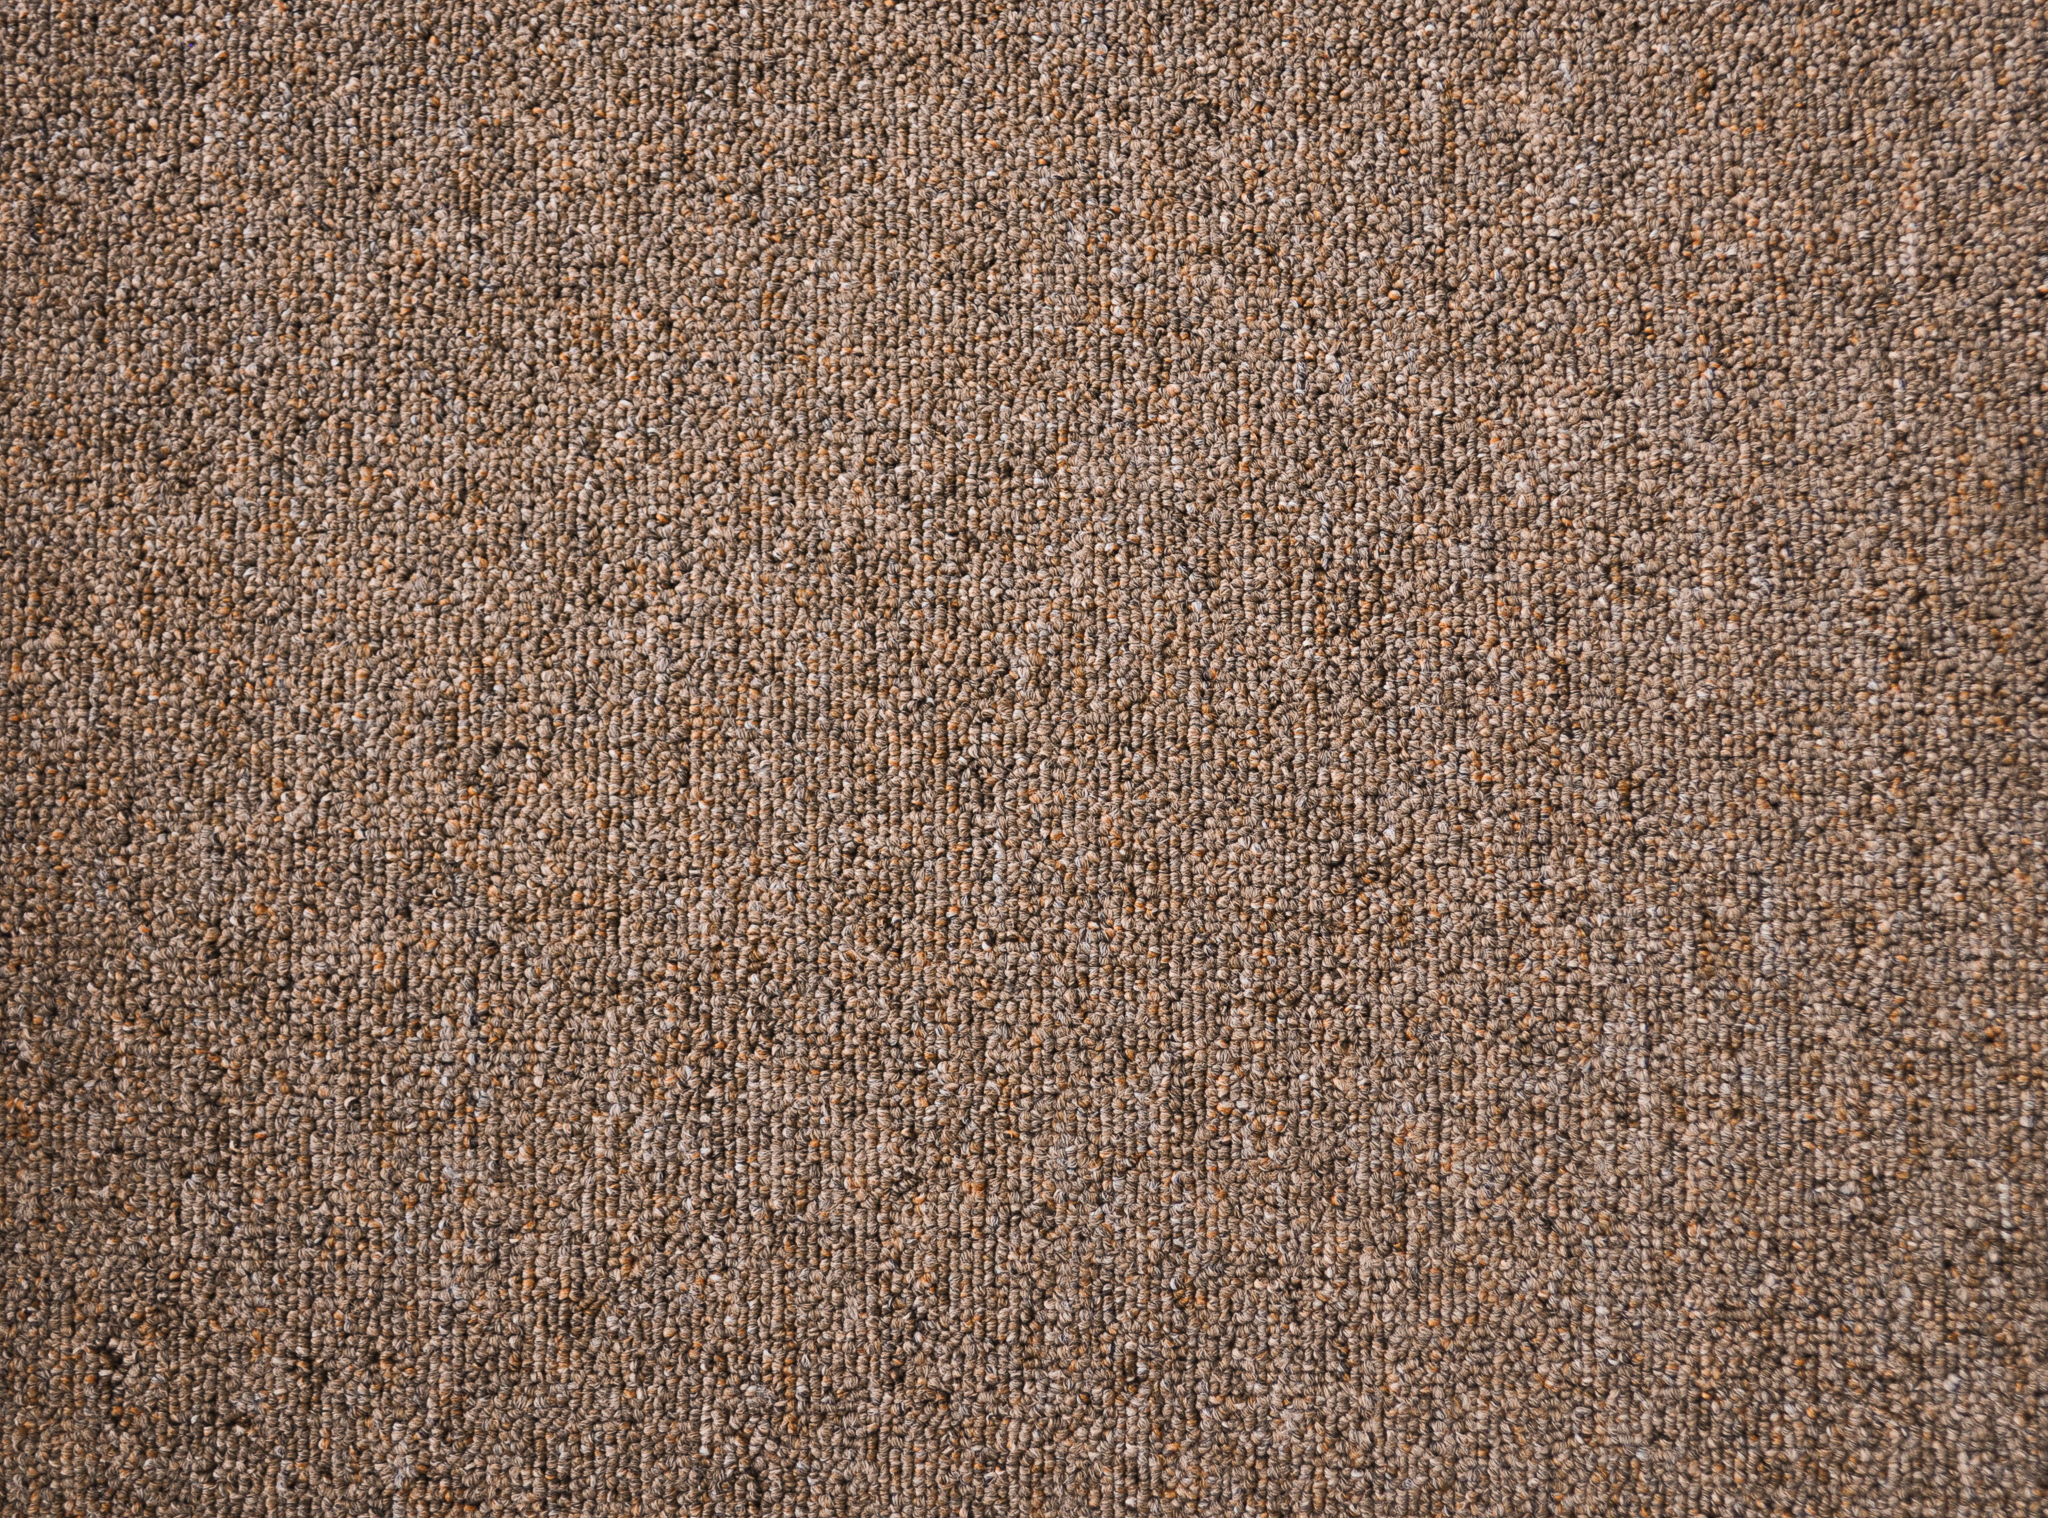 a sample of carpet of the earthen color in the carpet range useful vallet.